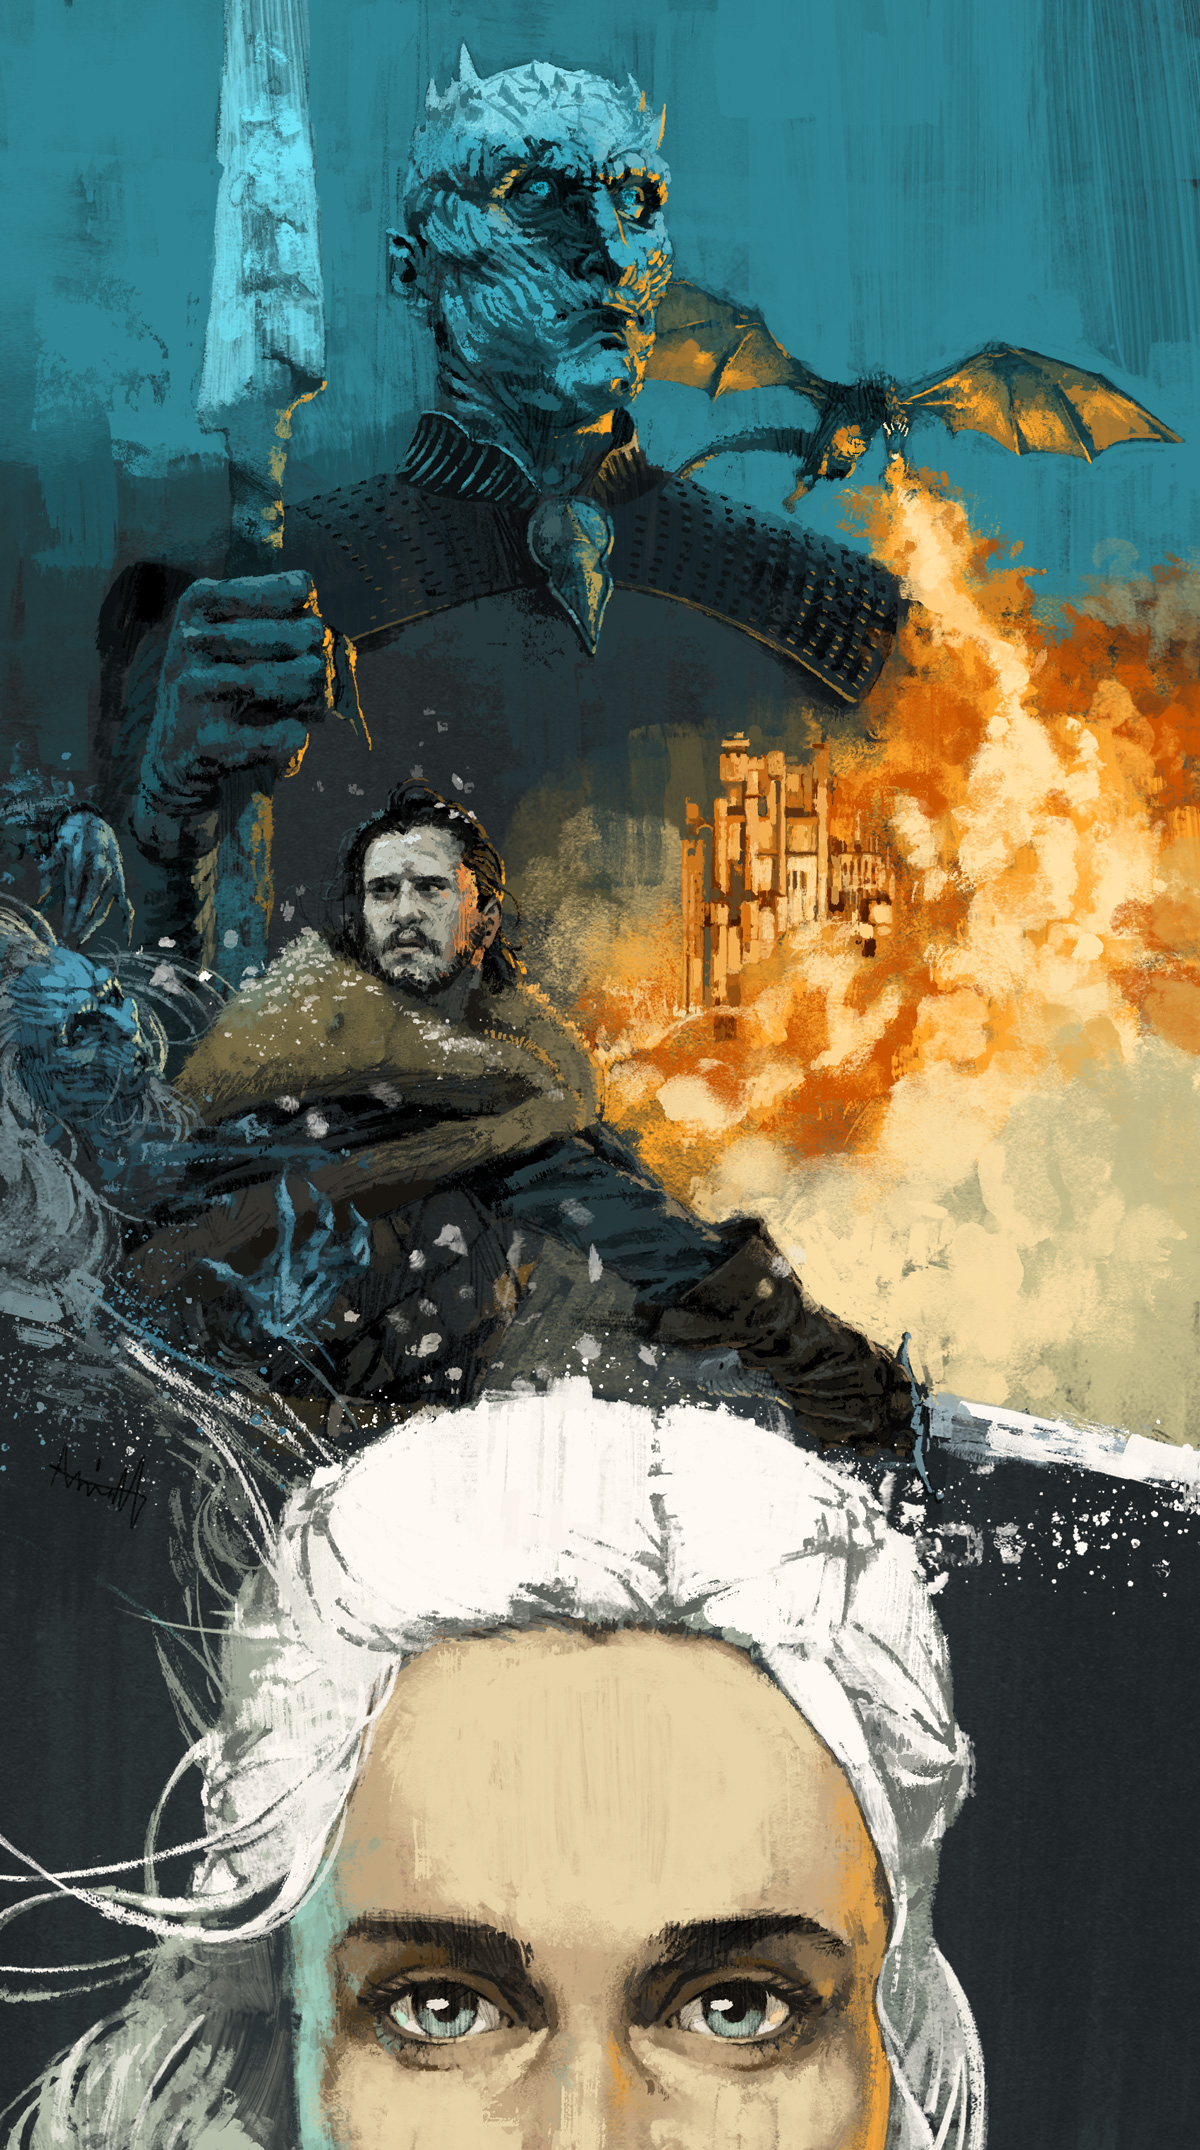 Game Of Thrones for Variety Magazine by Marc Aspinall